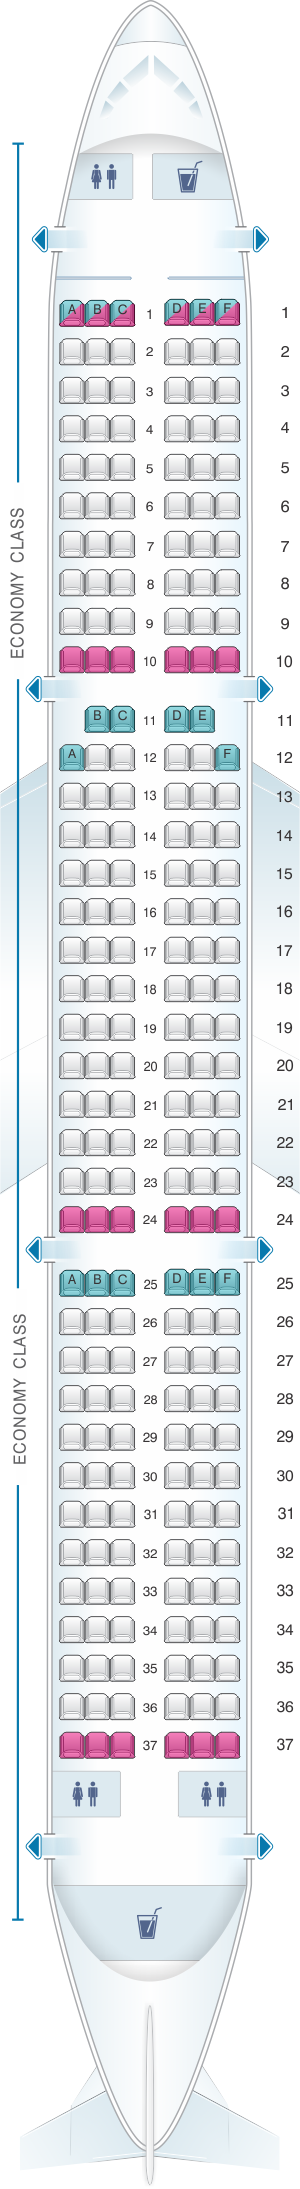 Seat map for SmartLynx Airlines Airbus A321 - 220 PAX